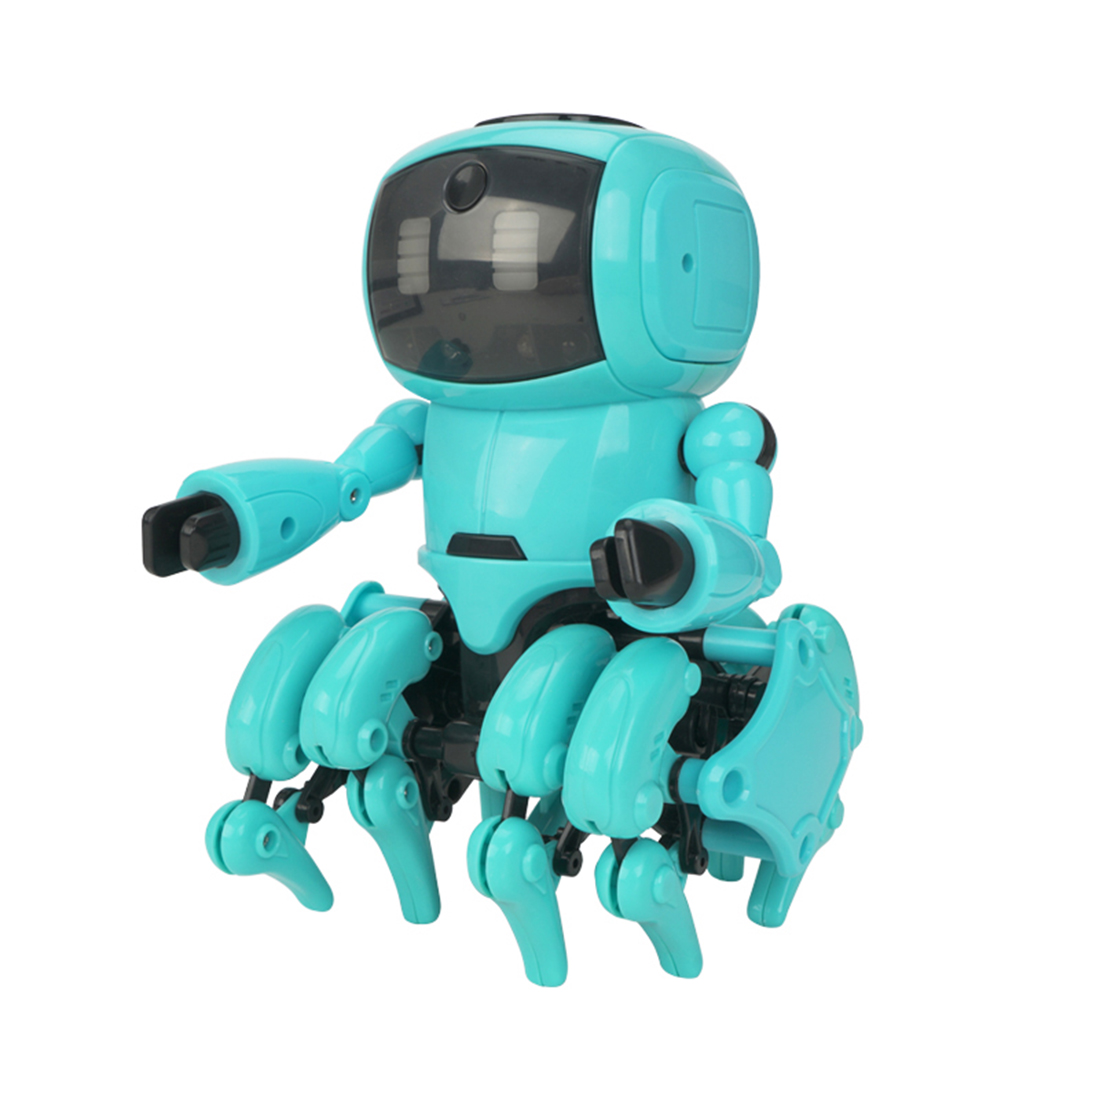 DIY Little Eight Robot Assembly Smart Follow Robot Infrared Obstacle Avoidance Gesture Sensing Toy Kids Birthdaty Gifts 2019